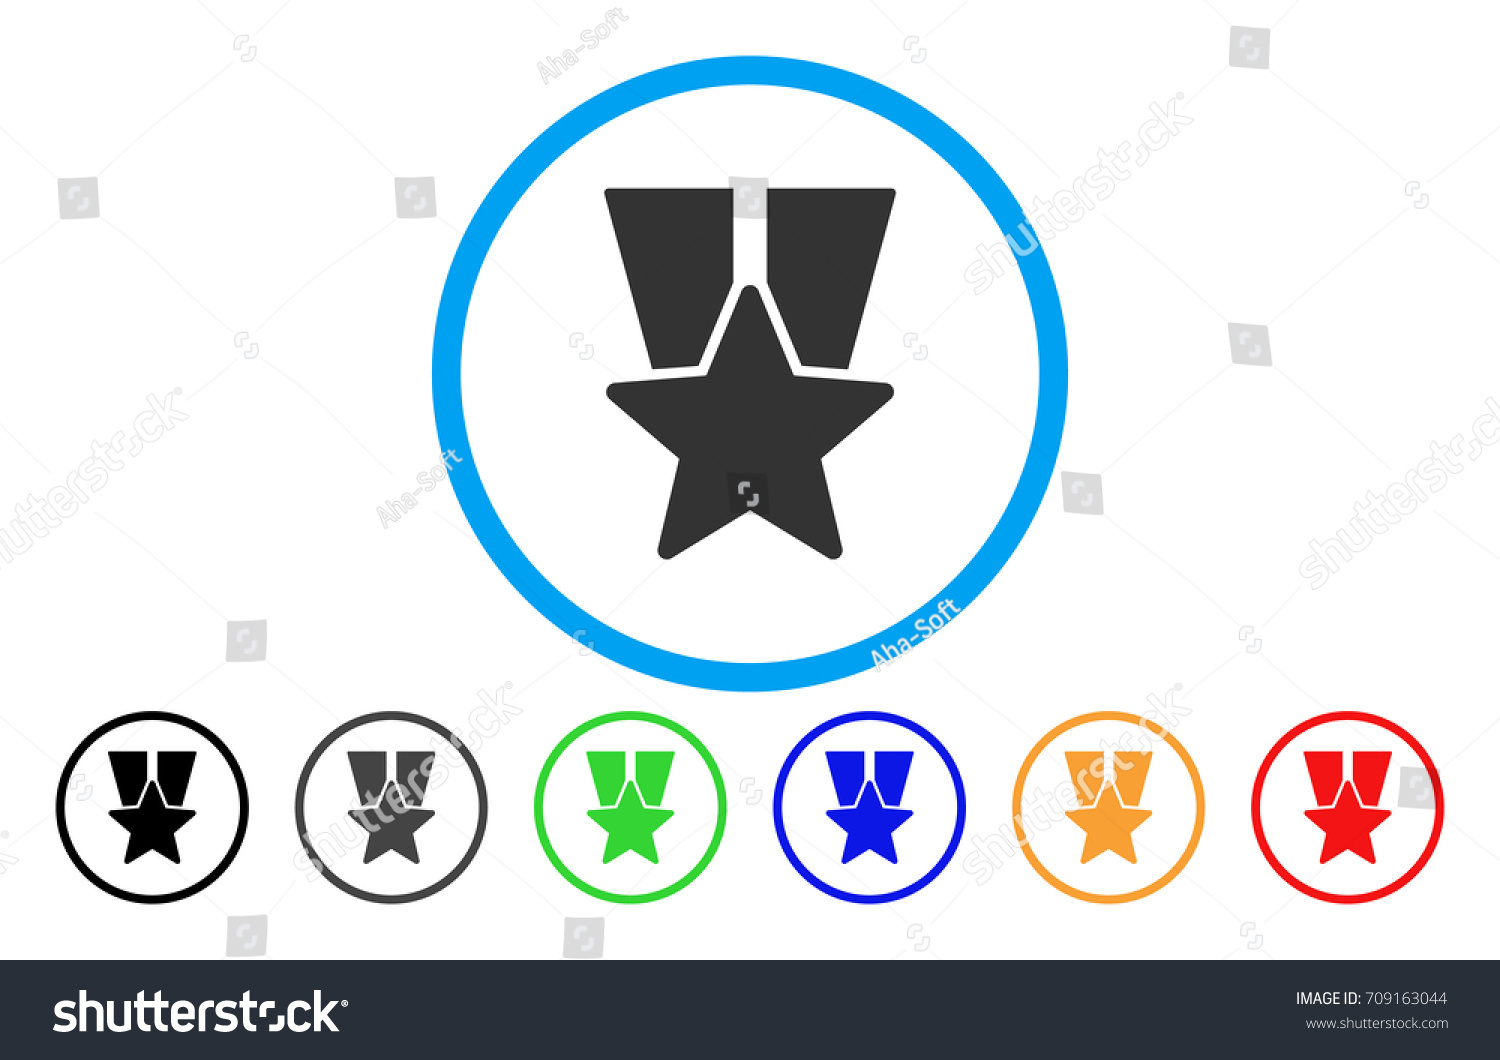 Star Medal Vector Rounded Icon Image Stock Vector Royalty Free